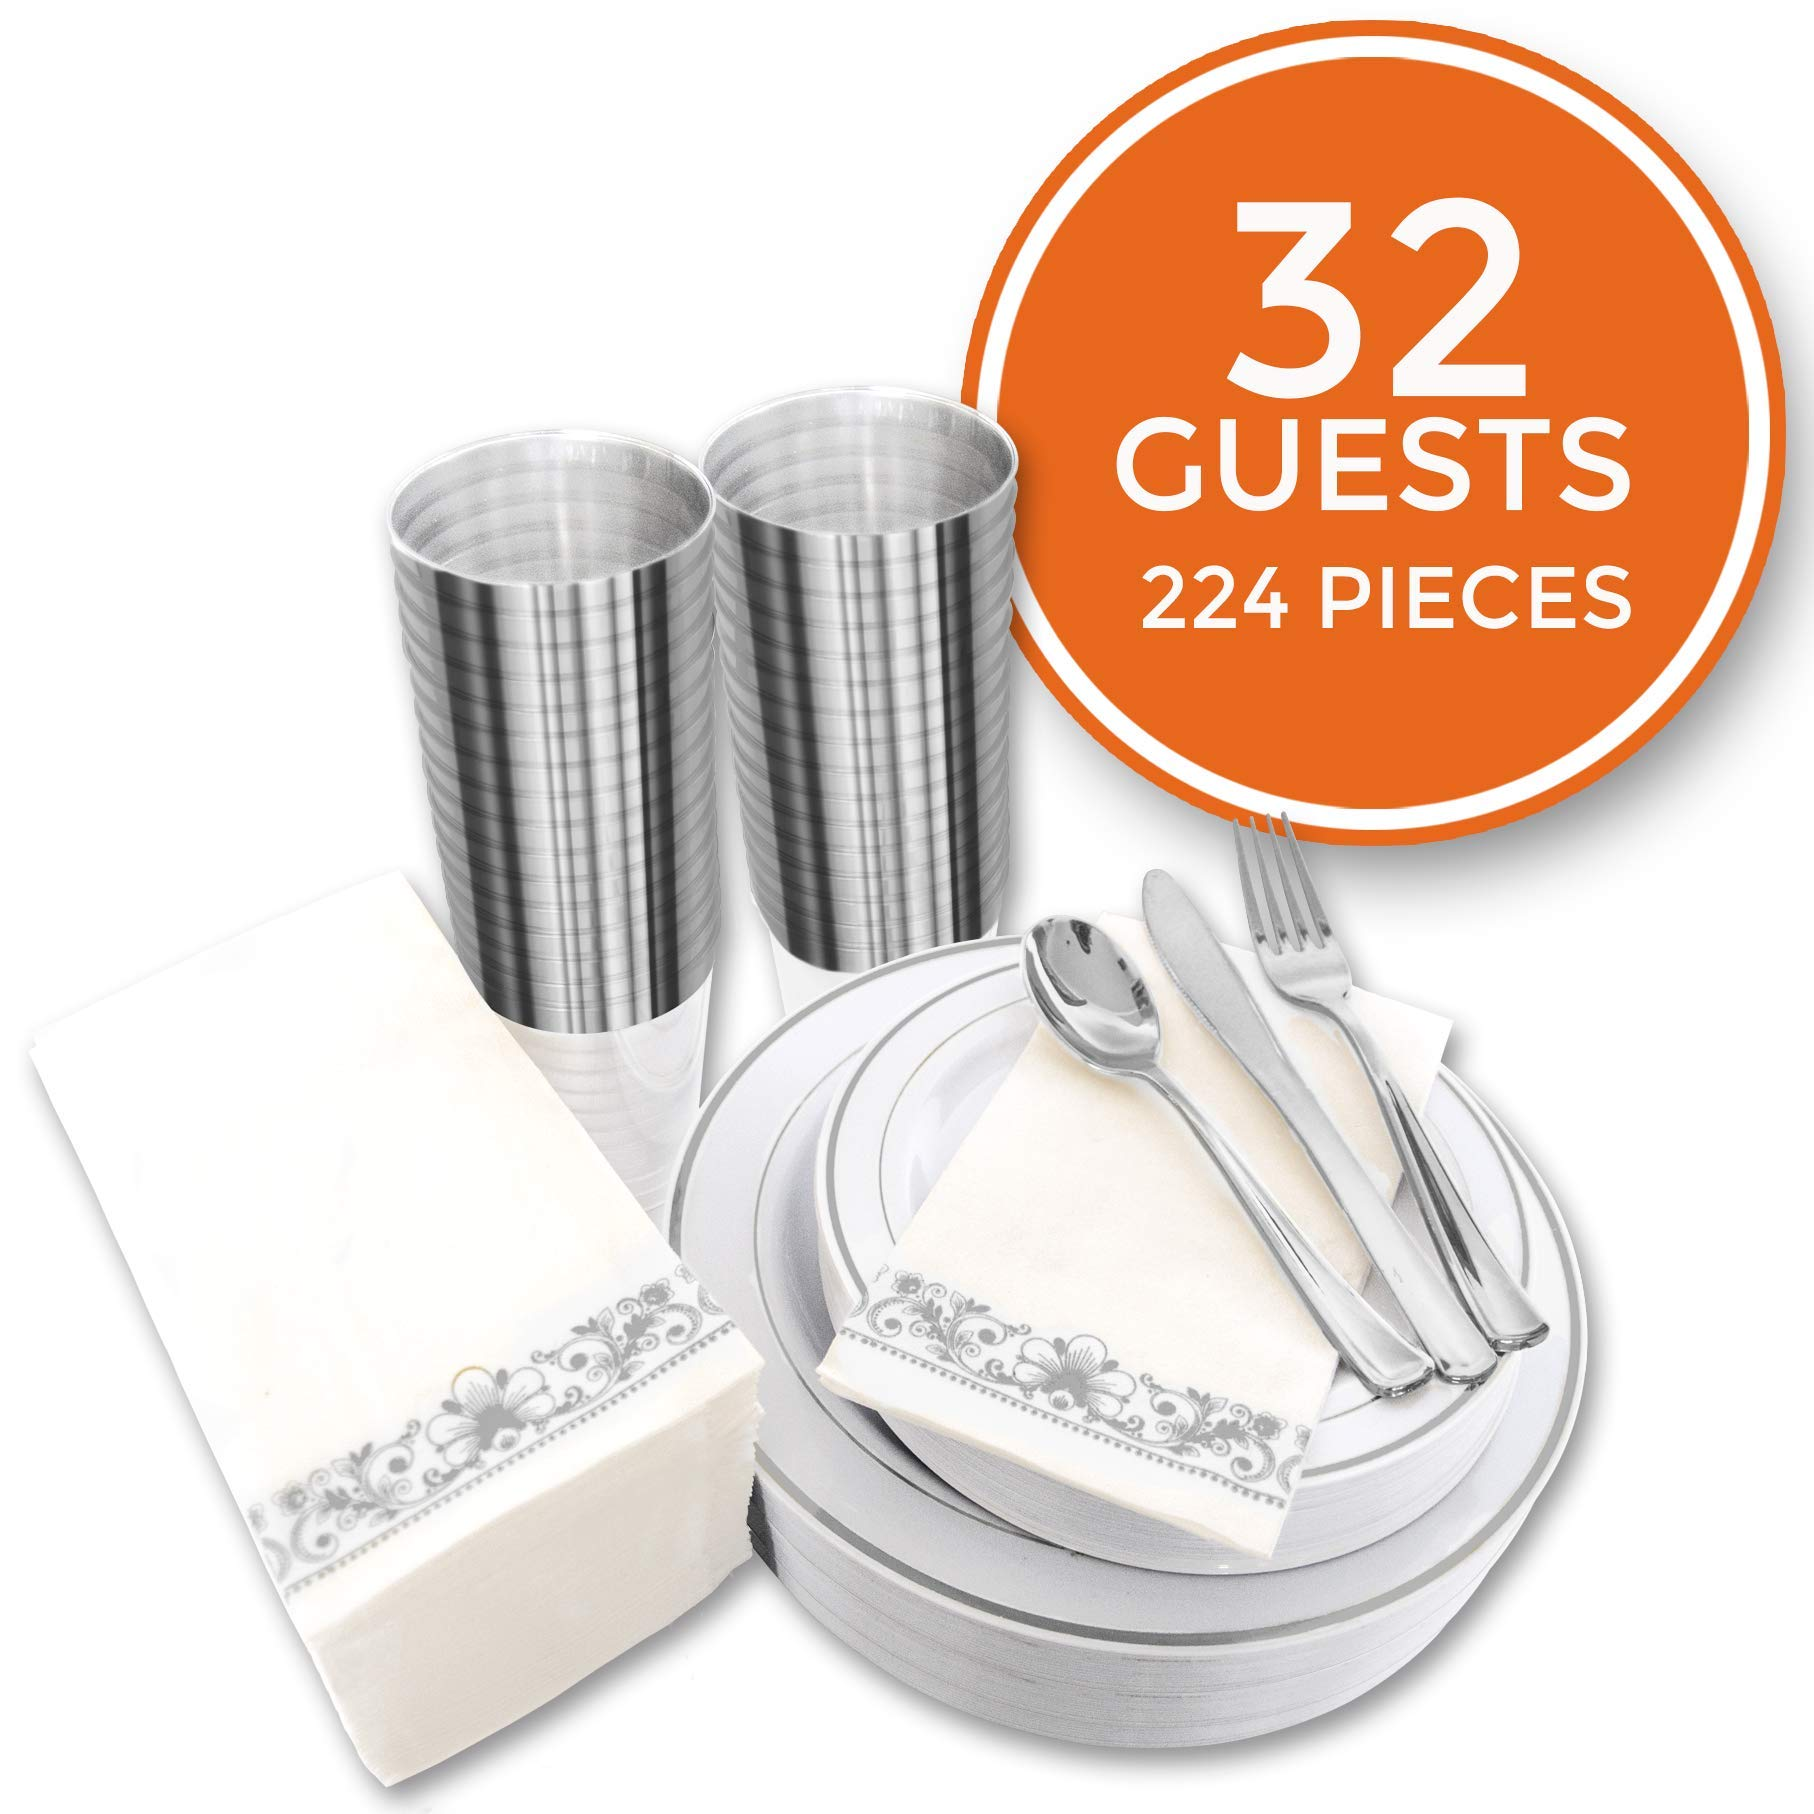 224 PCS Silver Plastic Dinnerware Set for 32 Guests. Silver Plastic Plates with Silver Cups Silverware and Napkins. Ideal for Parties, Weddings, Fancy & Elegant Dinners. Heavyduty Hard by Stellar Home & Living